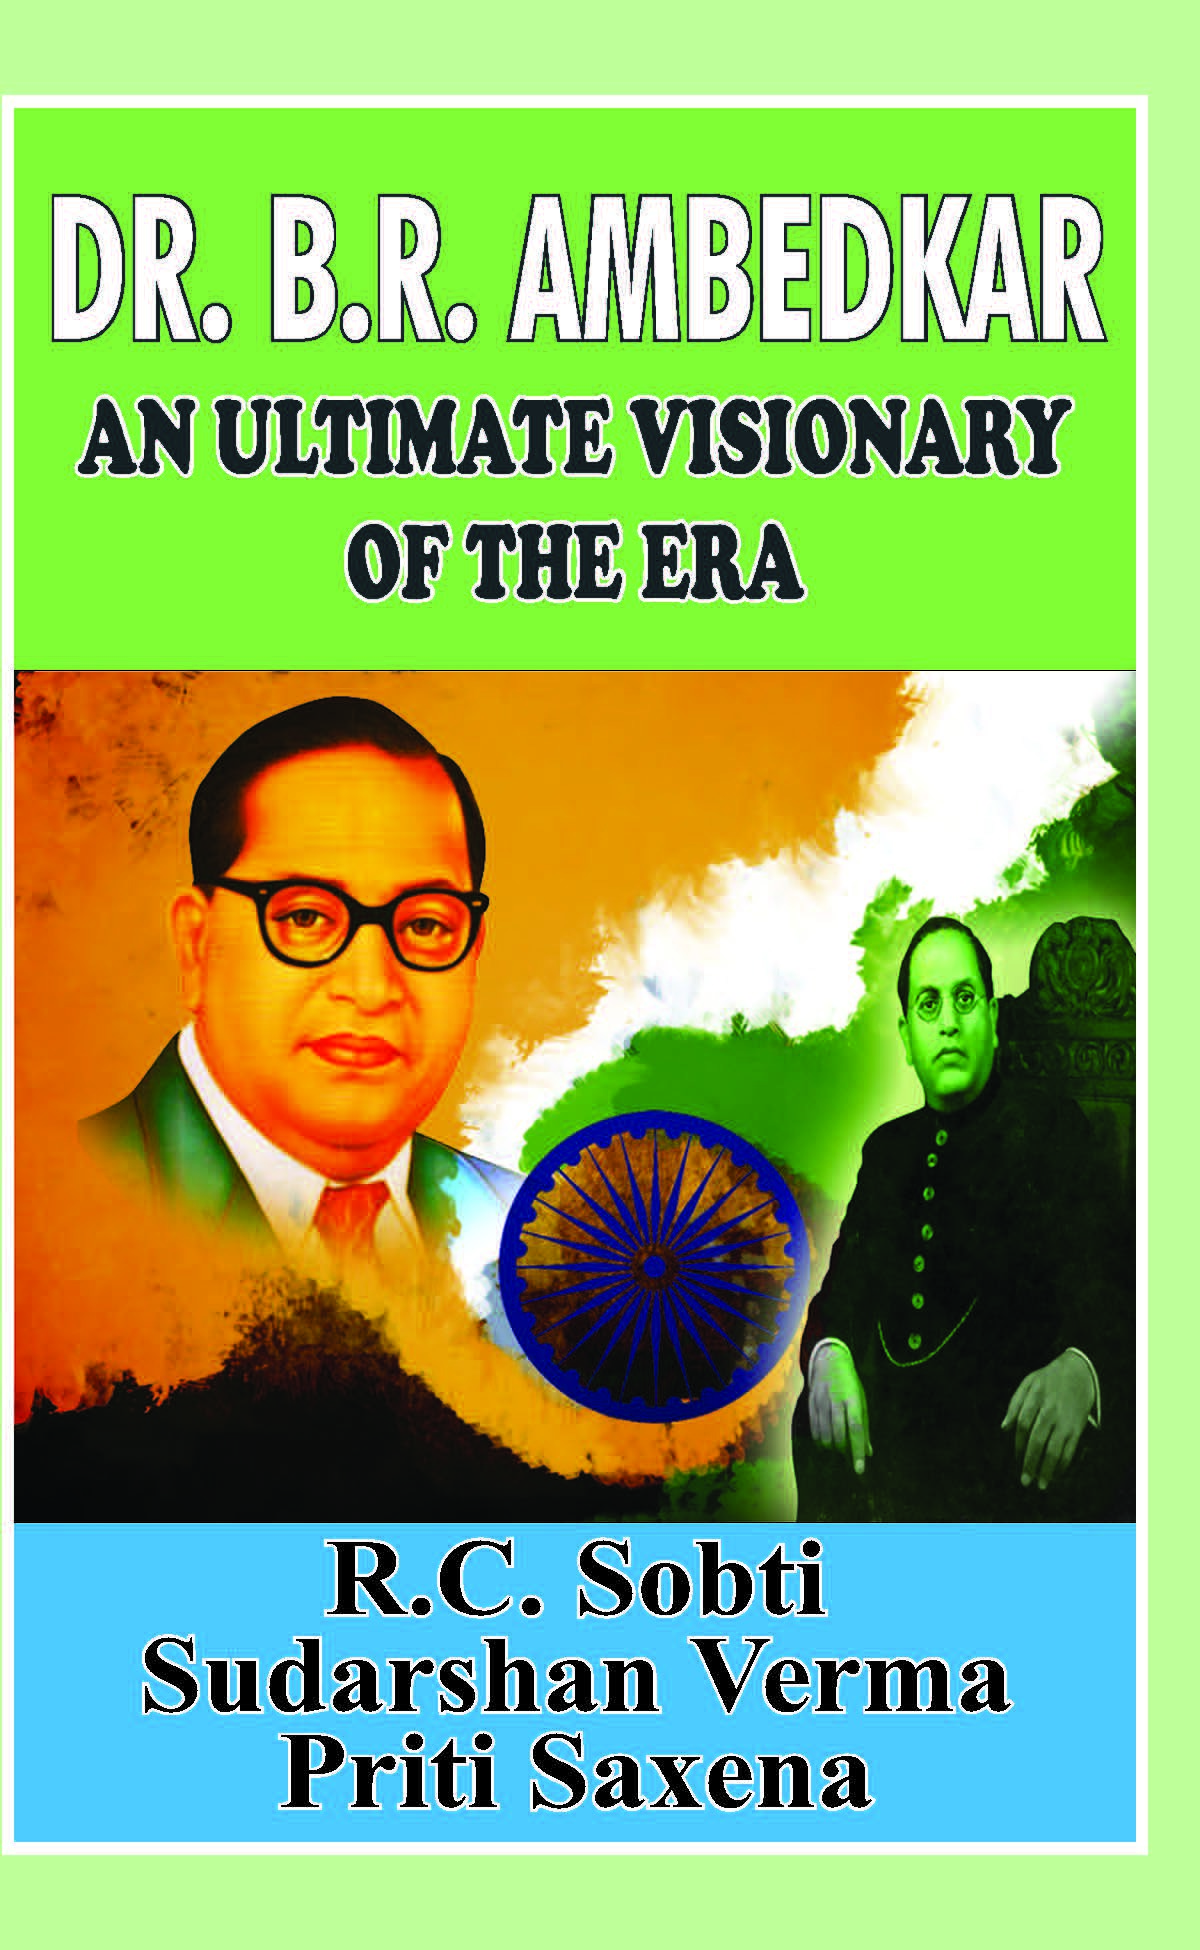 Dr. B R Ambedkar : An Ultimate Visionary of the Era